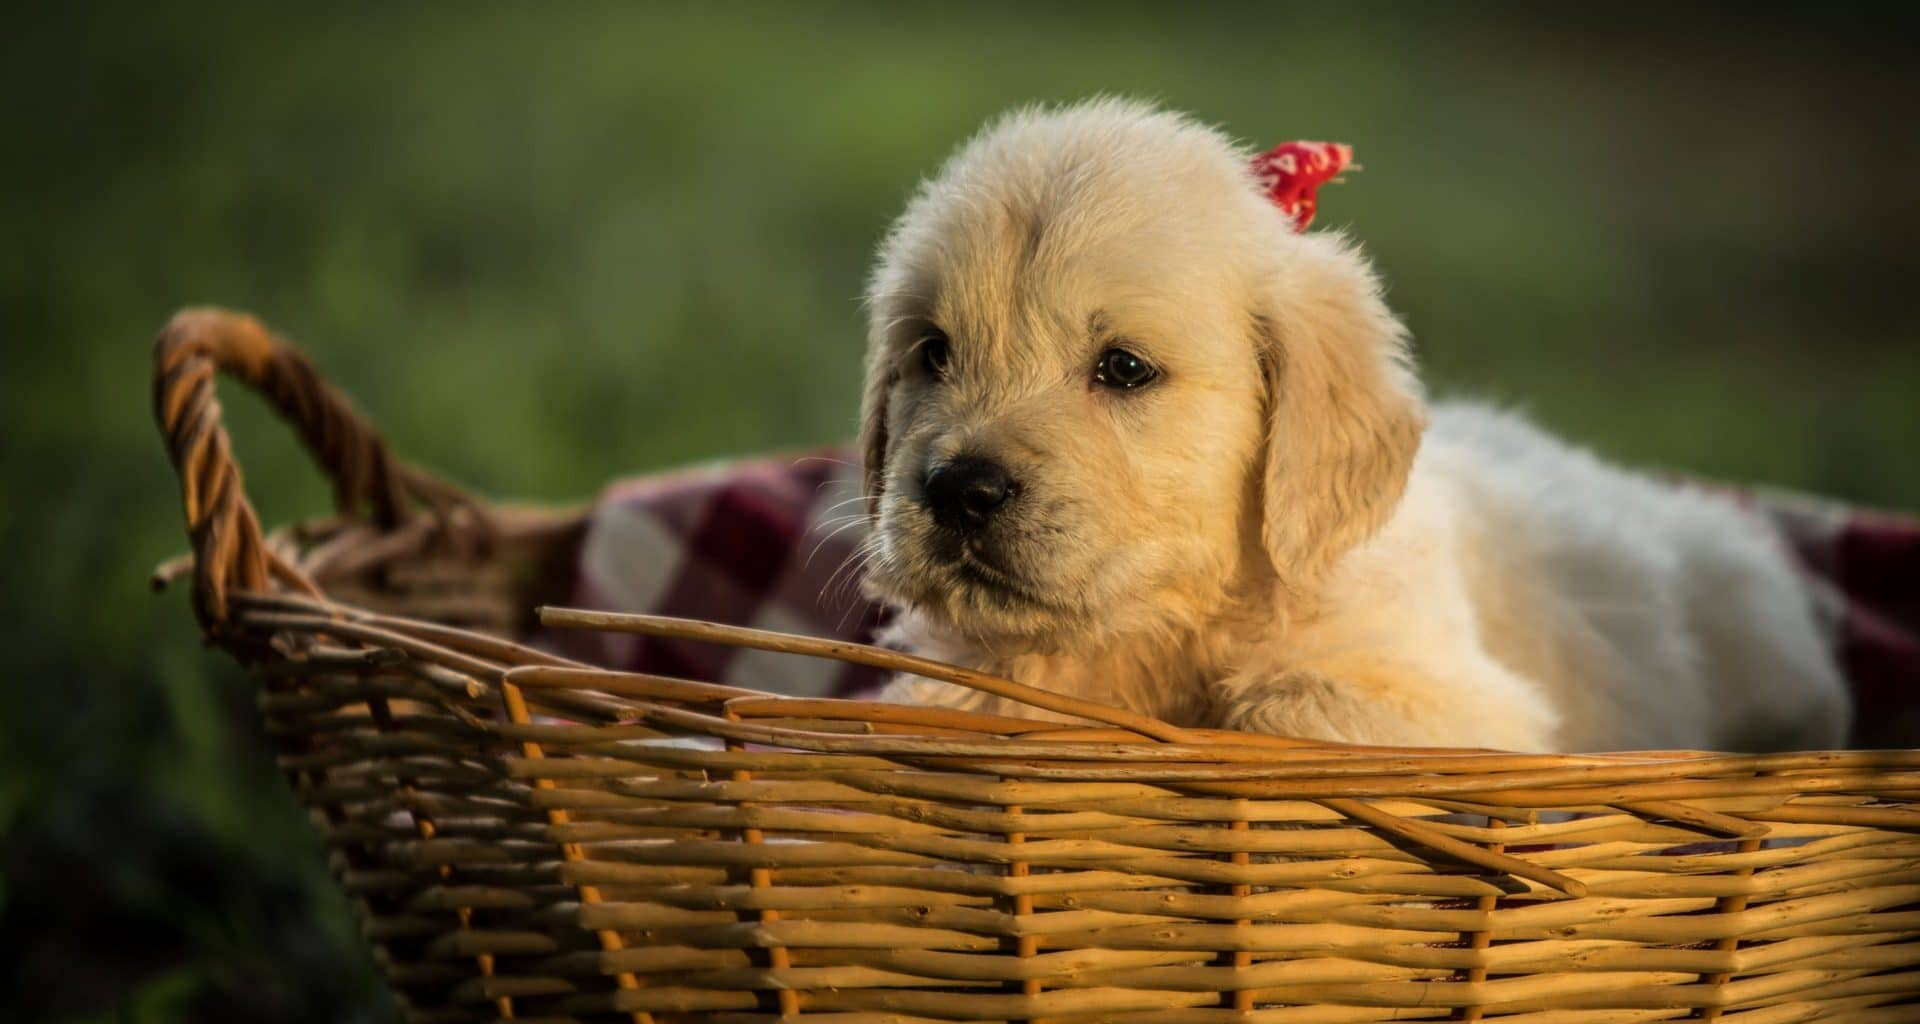 New Puppy Tips - Featuring Image